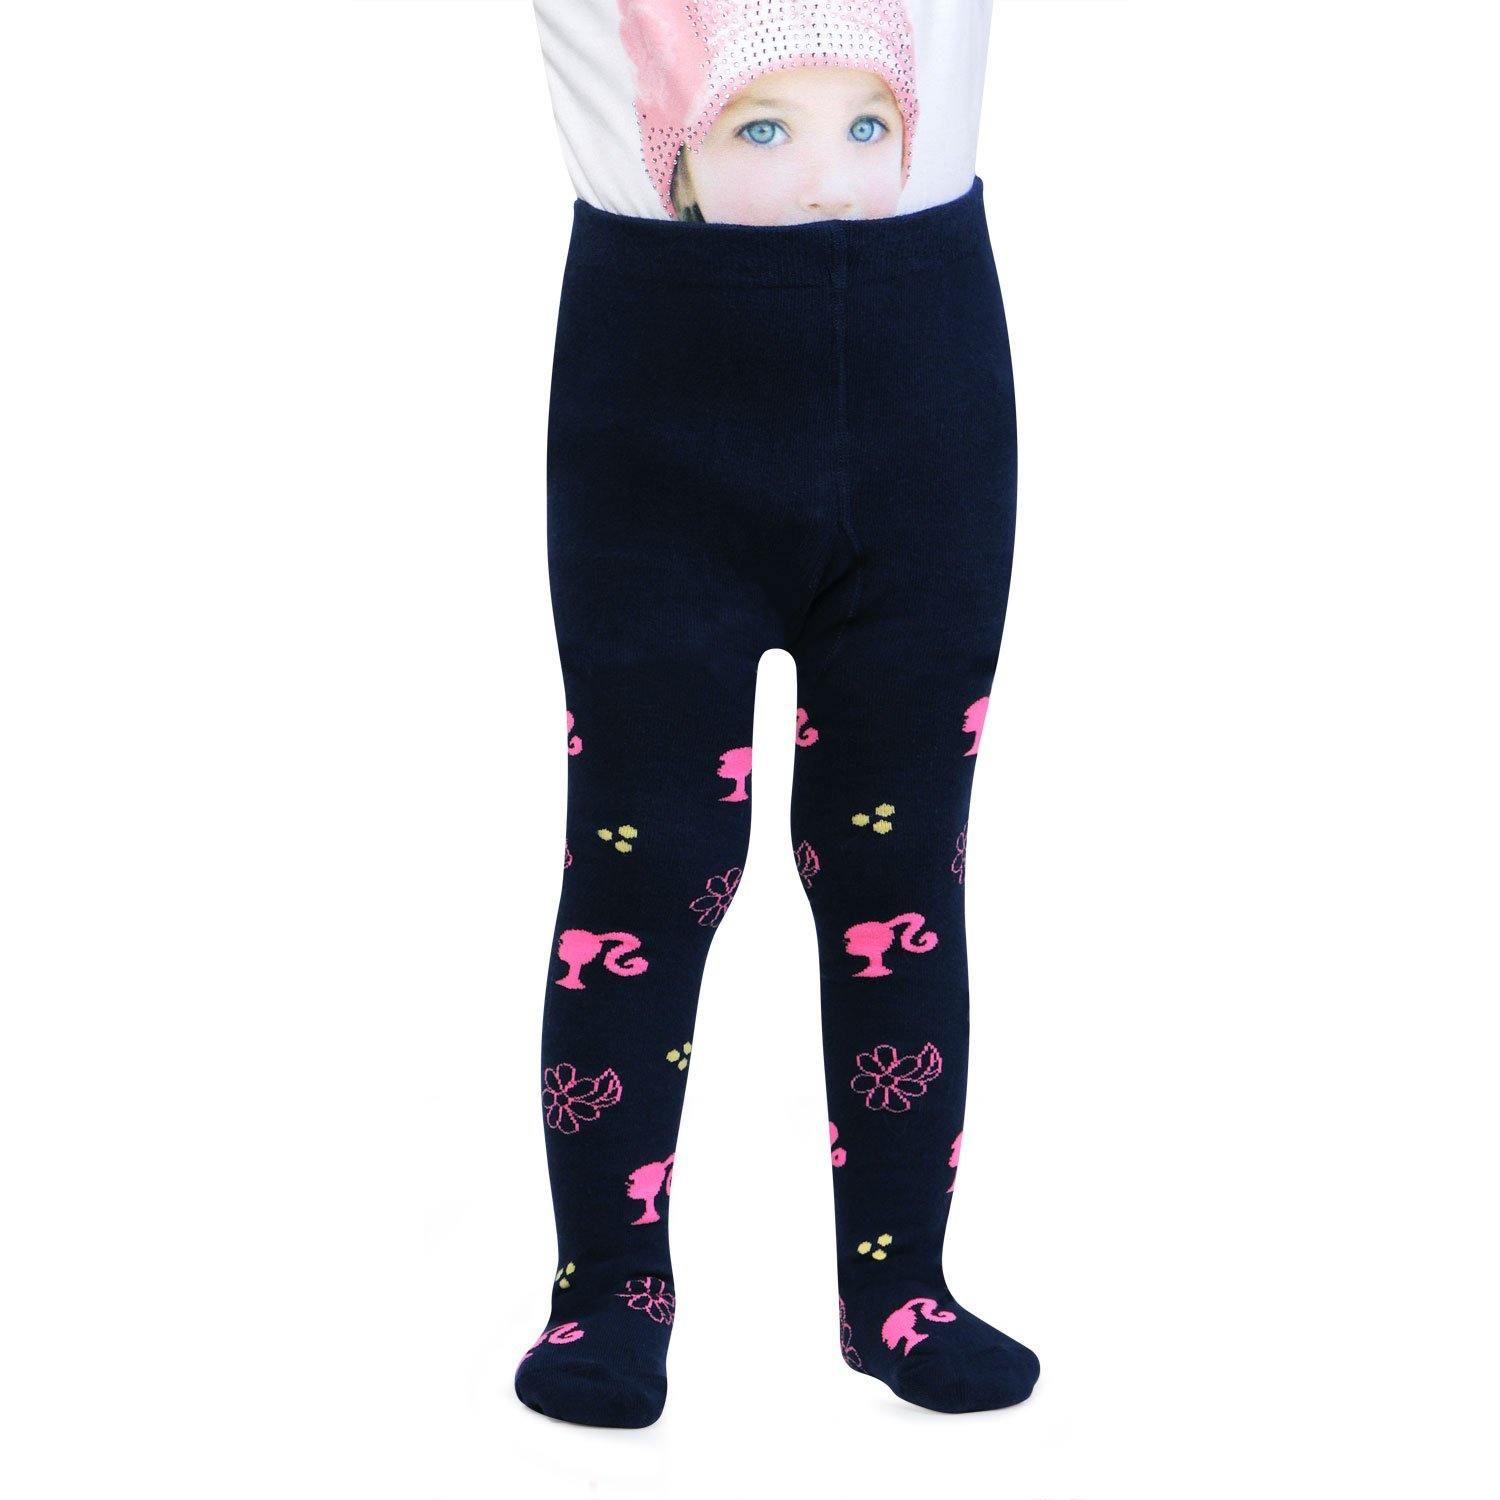 Barbie Cute Prints Knitted Tights For Baby Girls - Navy Pink